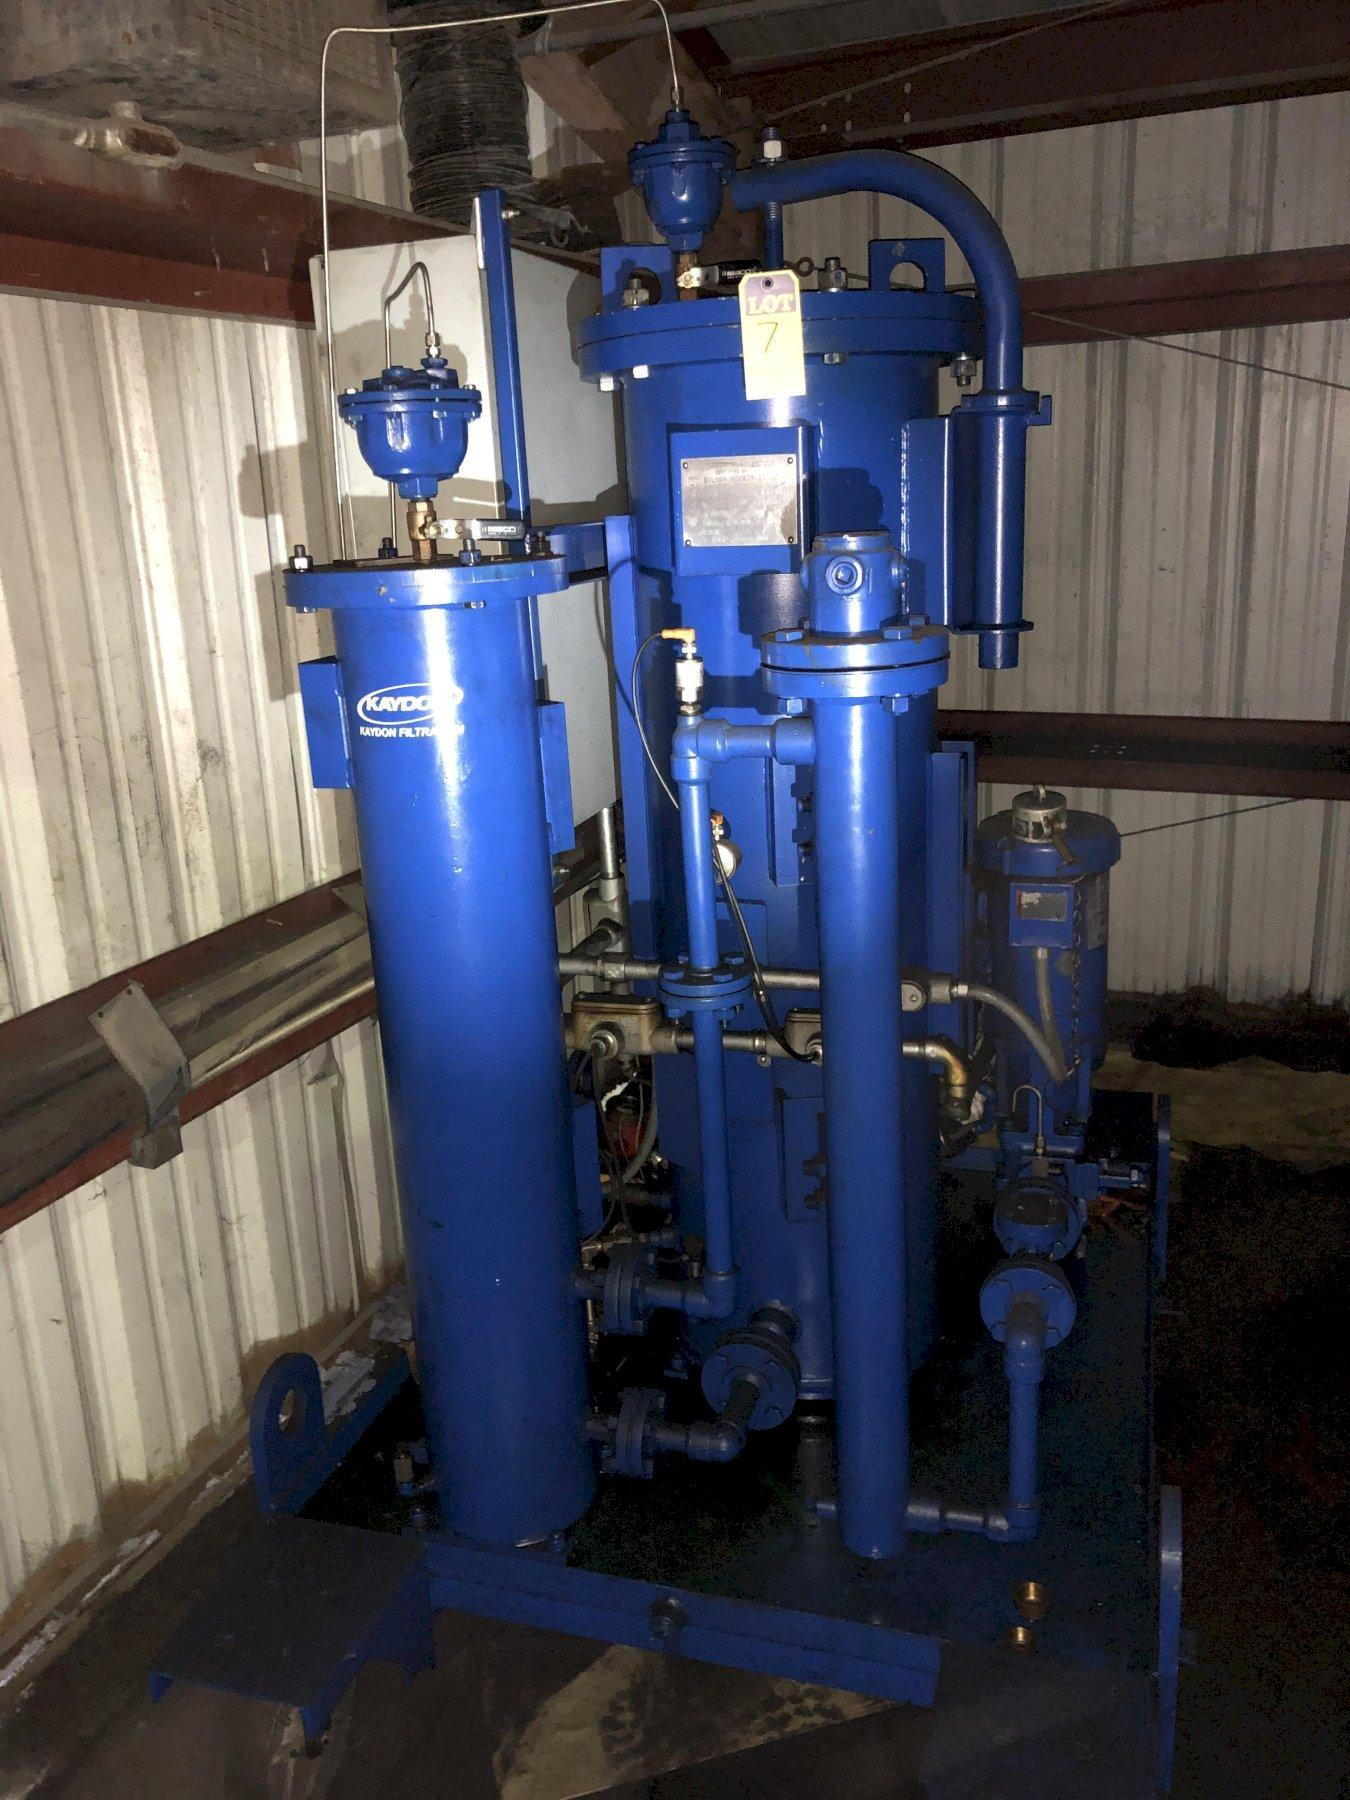 2010 Kaydon portable oil/water separator s/n 650015